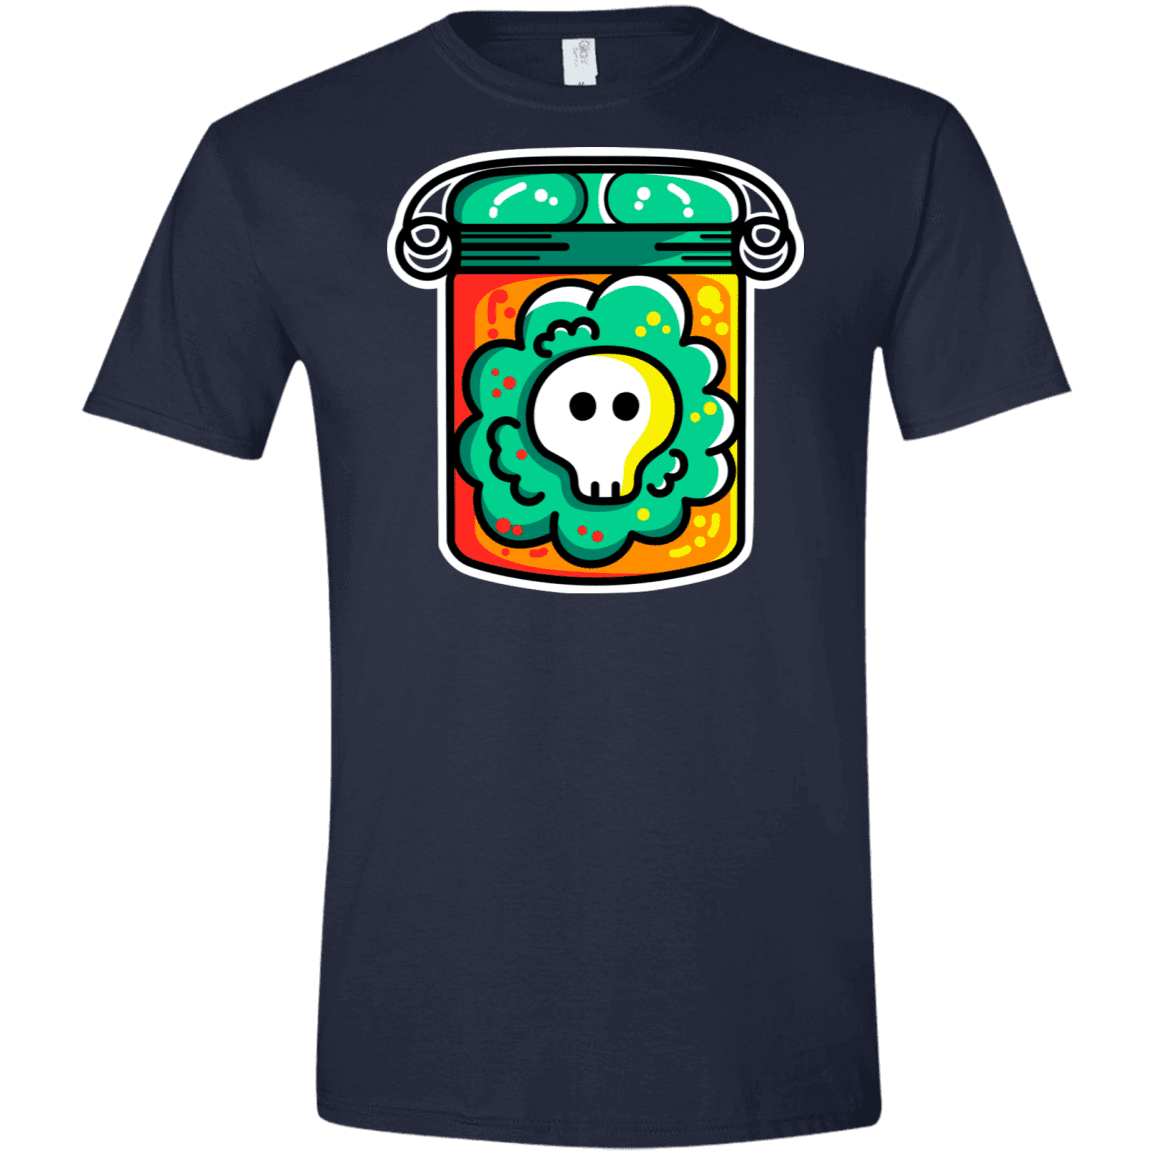 T-Shirts Navy / X-Small Cute Skull In A Jar Men's Semi-Fitted Softstyle